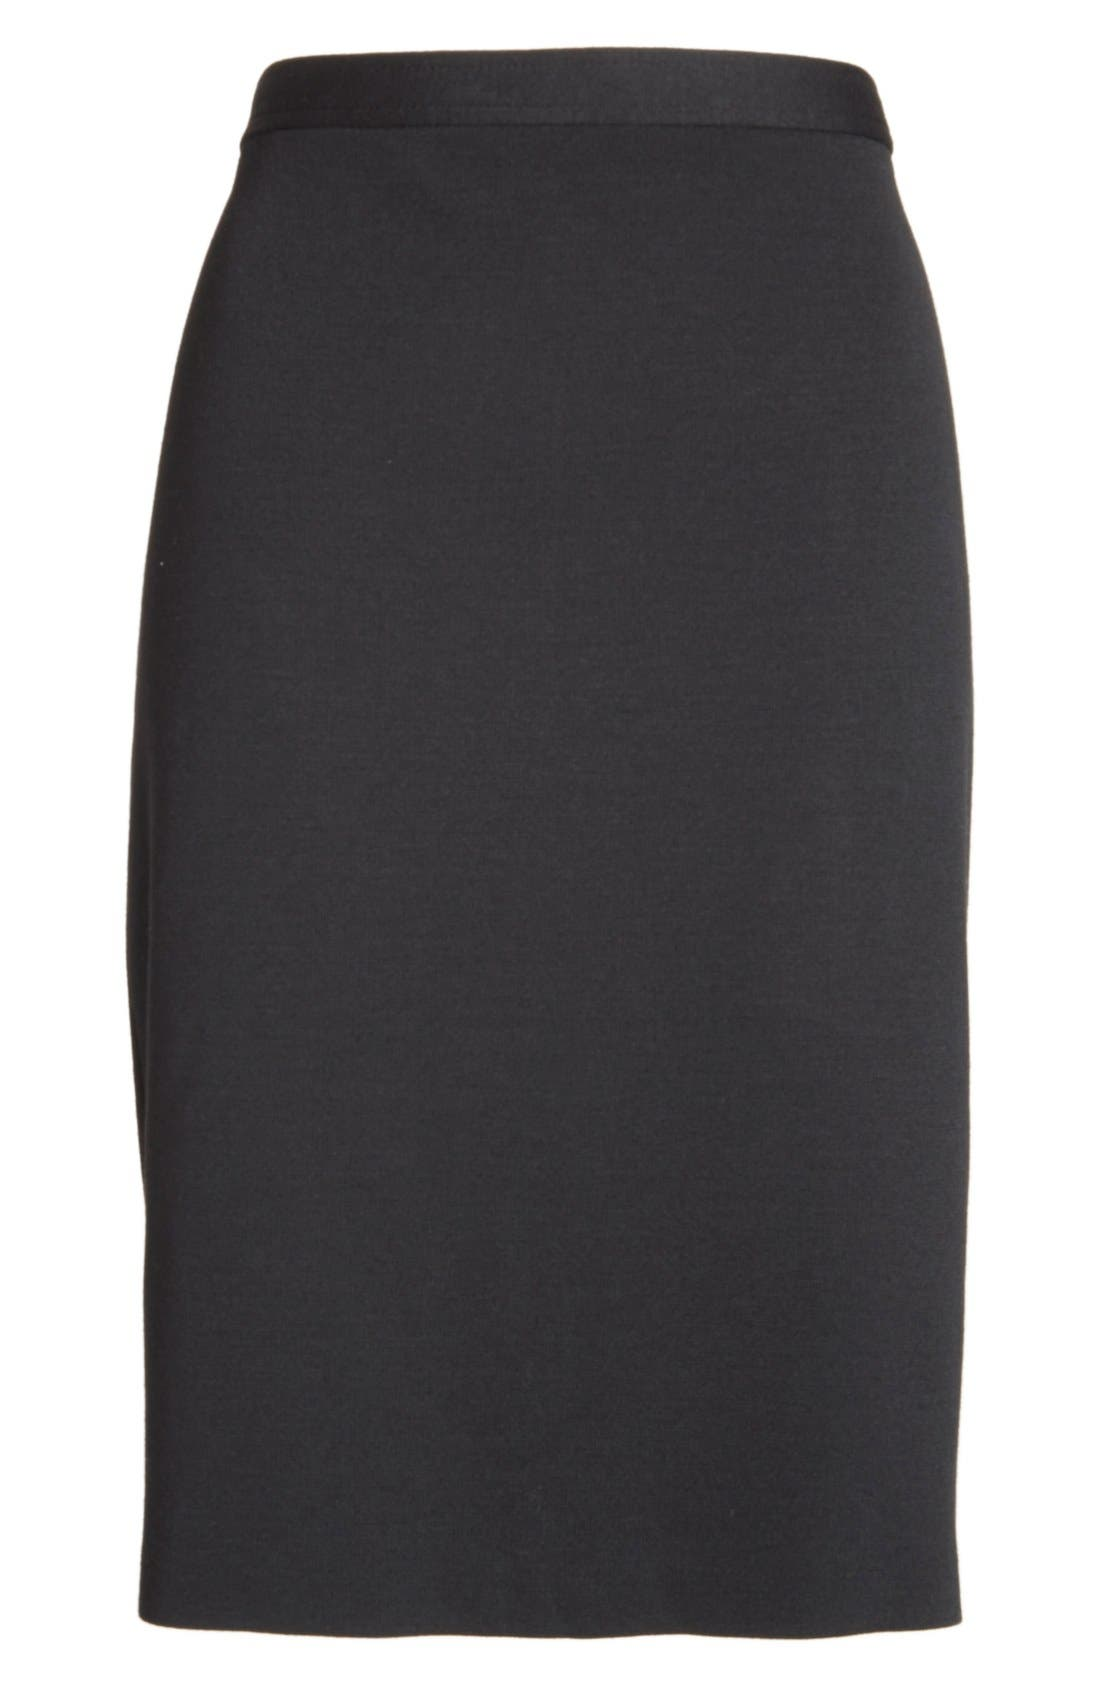 Milano Knit Pencil Skirt,                             Alternate thumbnail 5, color,                             CAVIAR